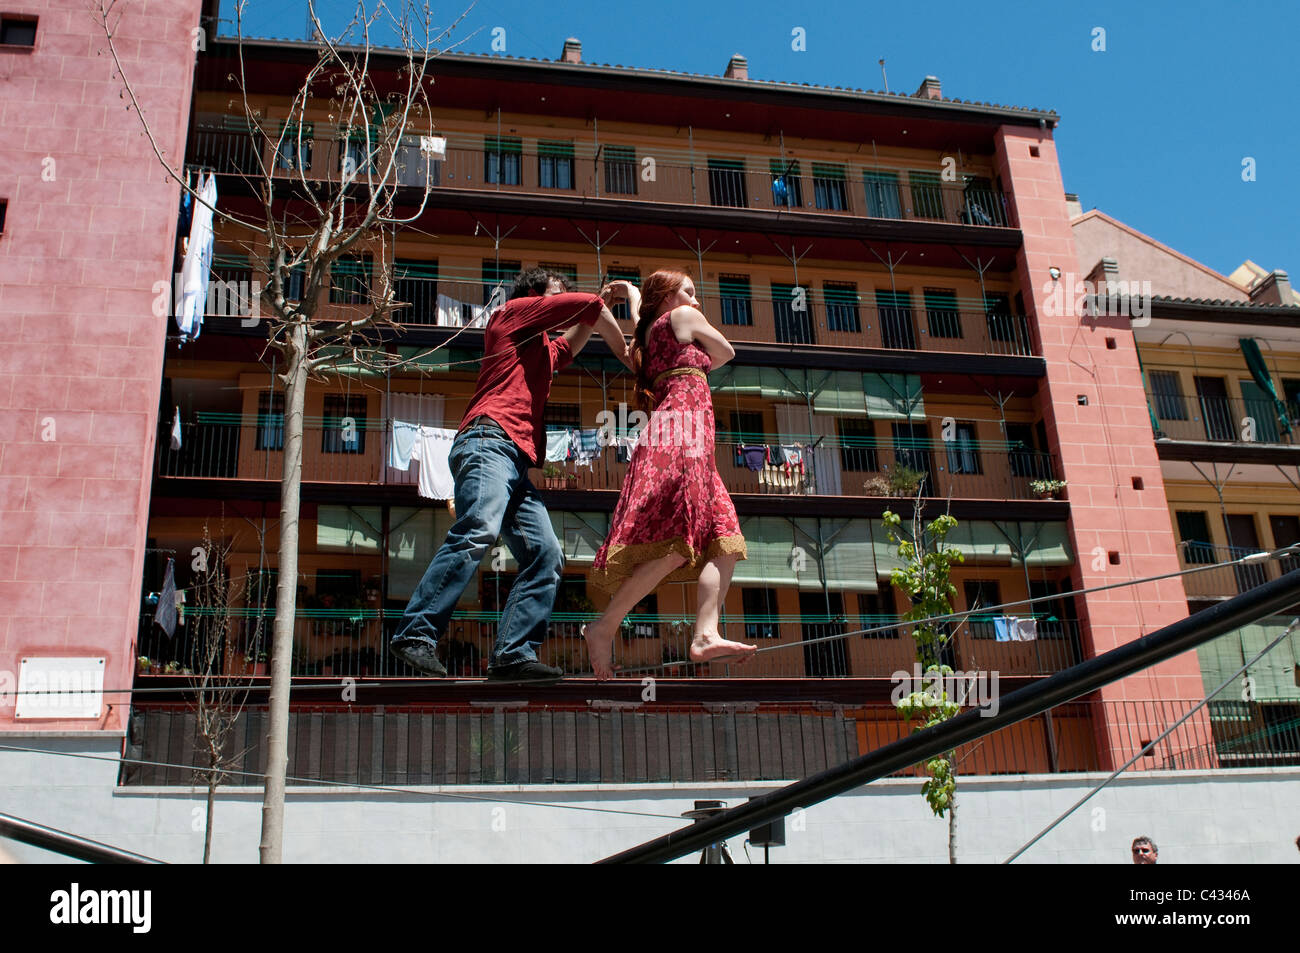 French duo Les Colporteurs perform on line for Festival of San Isidro, Plaza de la Corrala in Lavapies, Madrid, - Stock Image